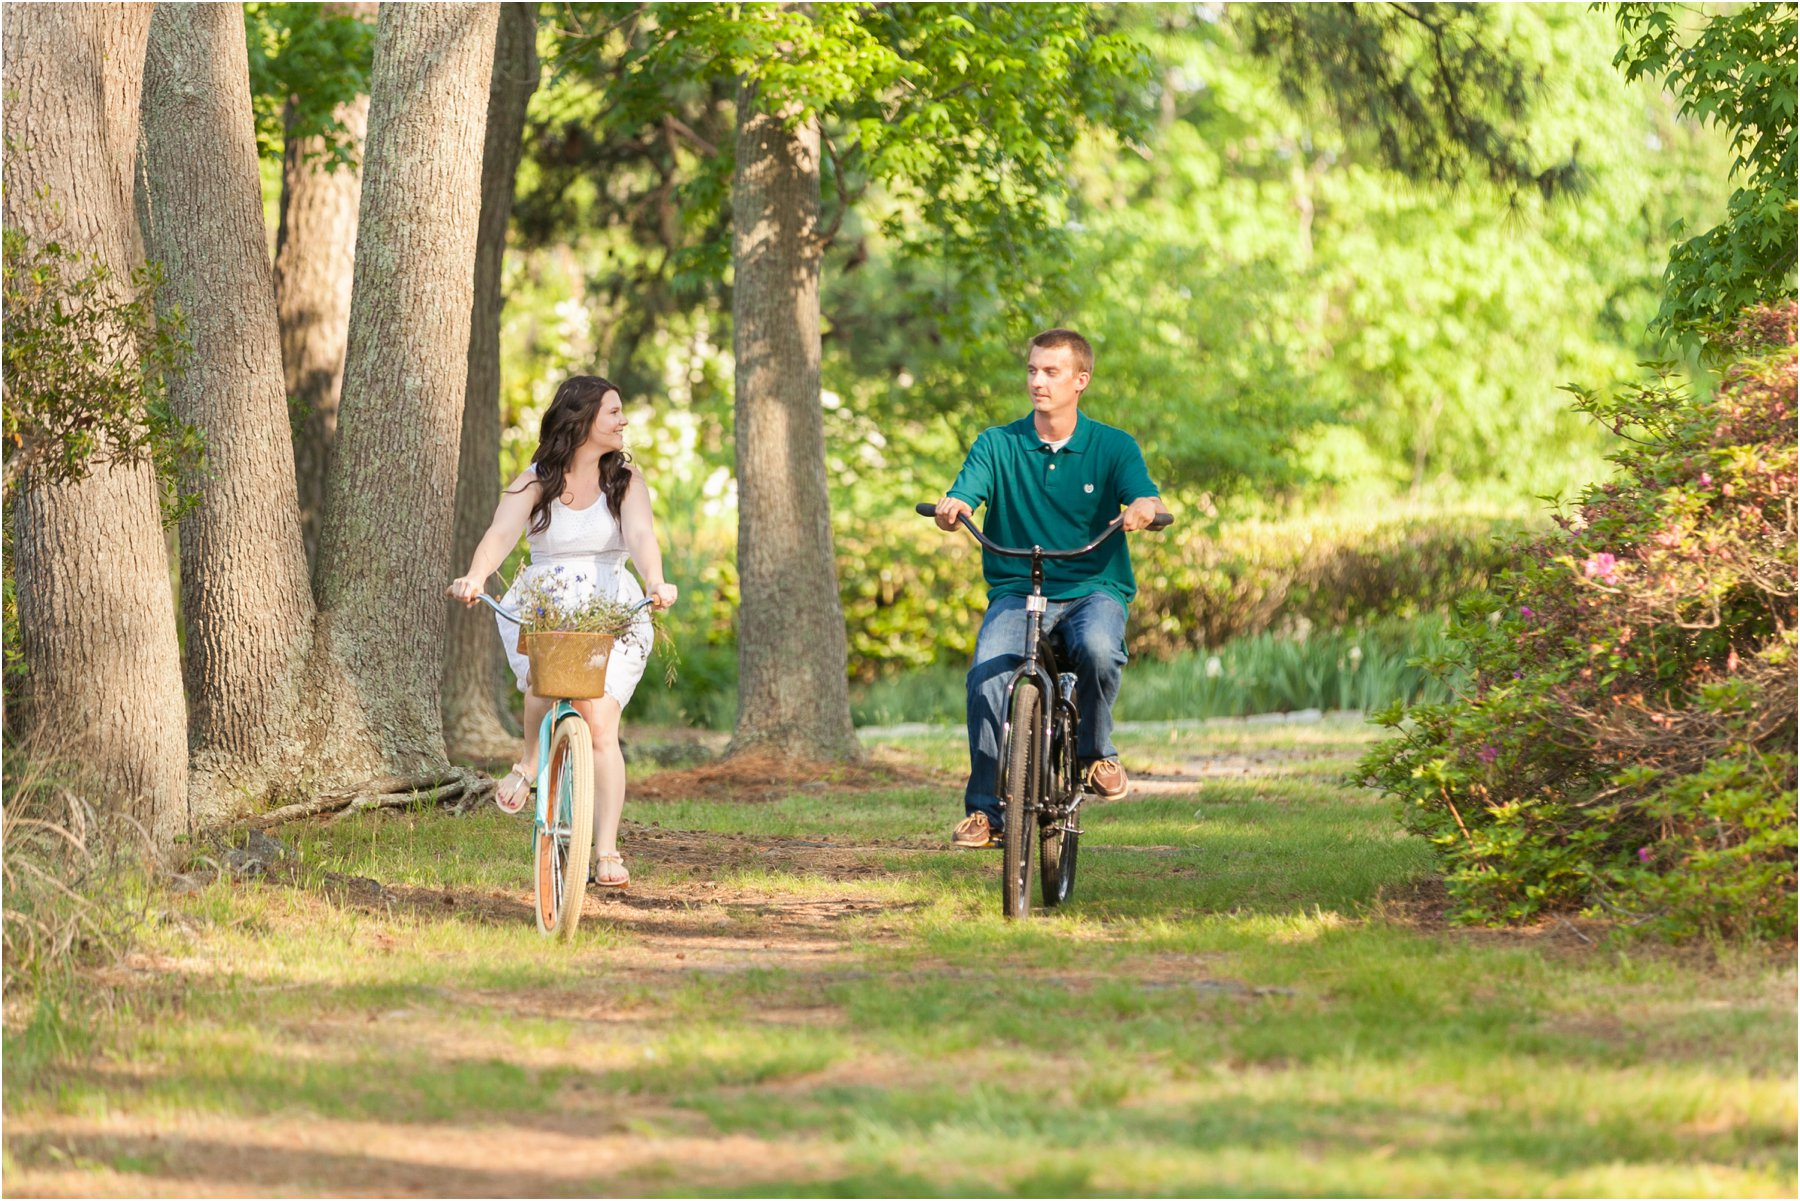 engagement_Photography_bike_ride_engagements_Jessica_Ryan_Photography_virginia_virginia_beach_0315